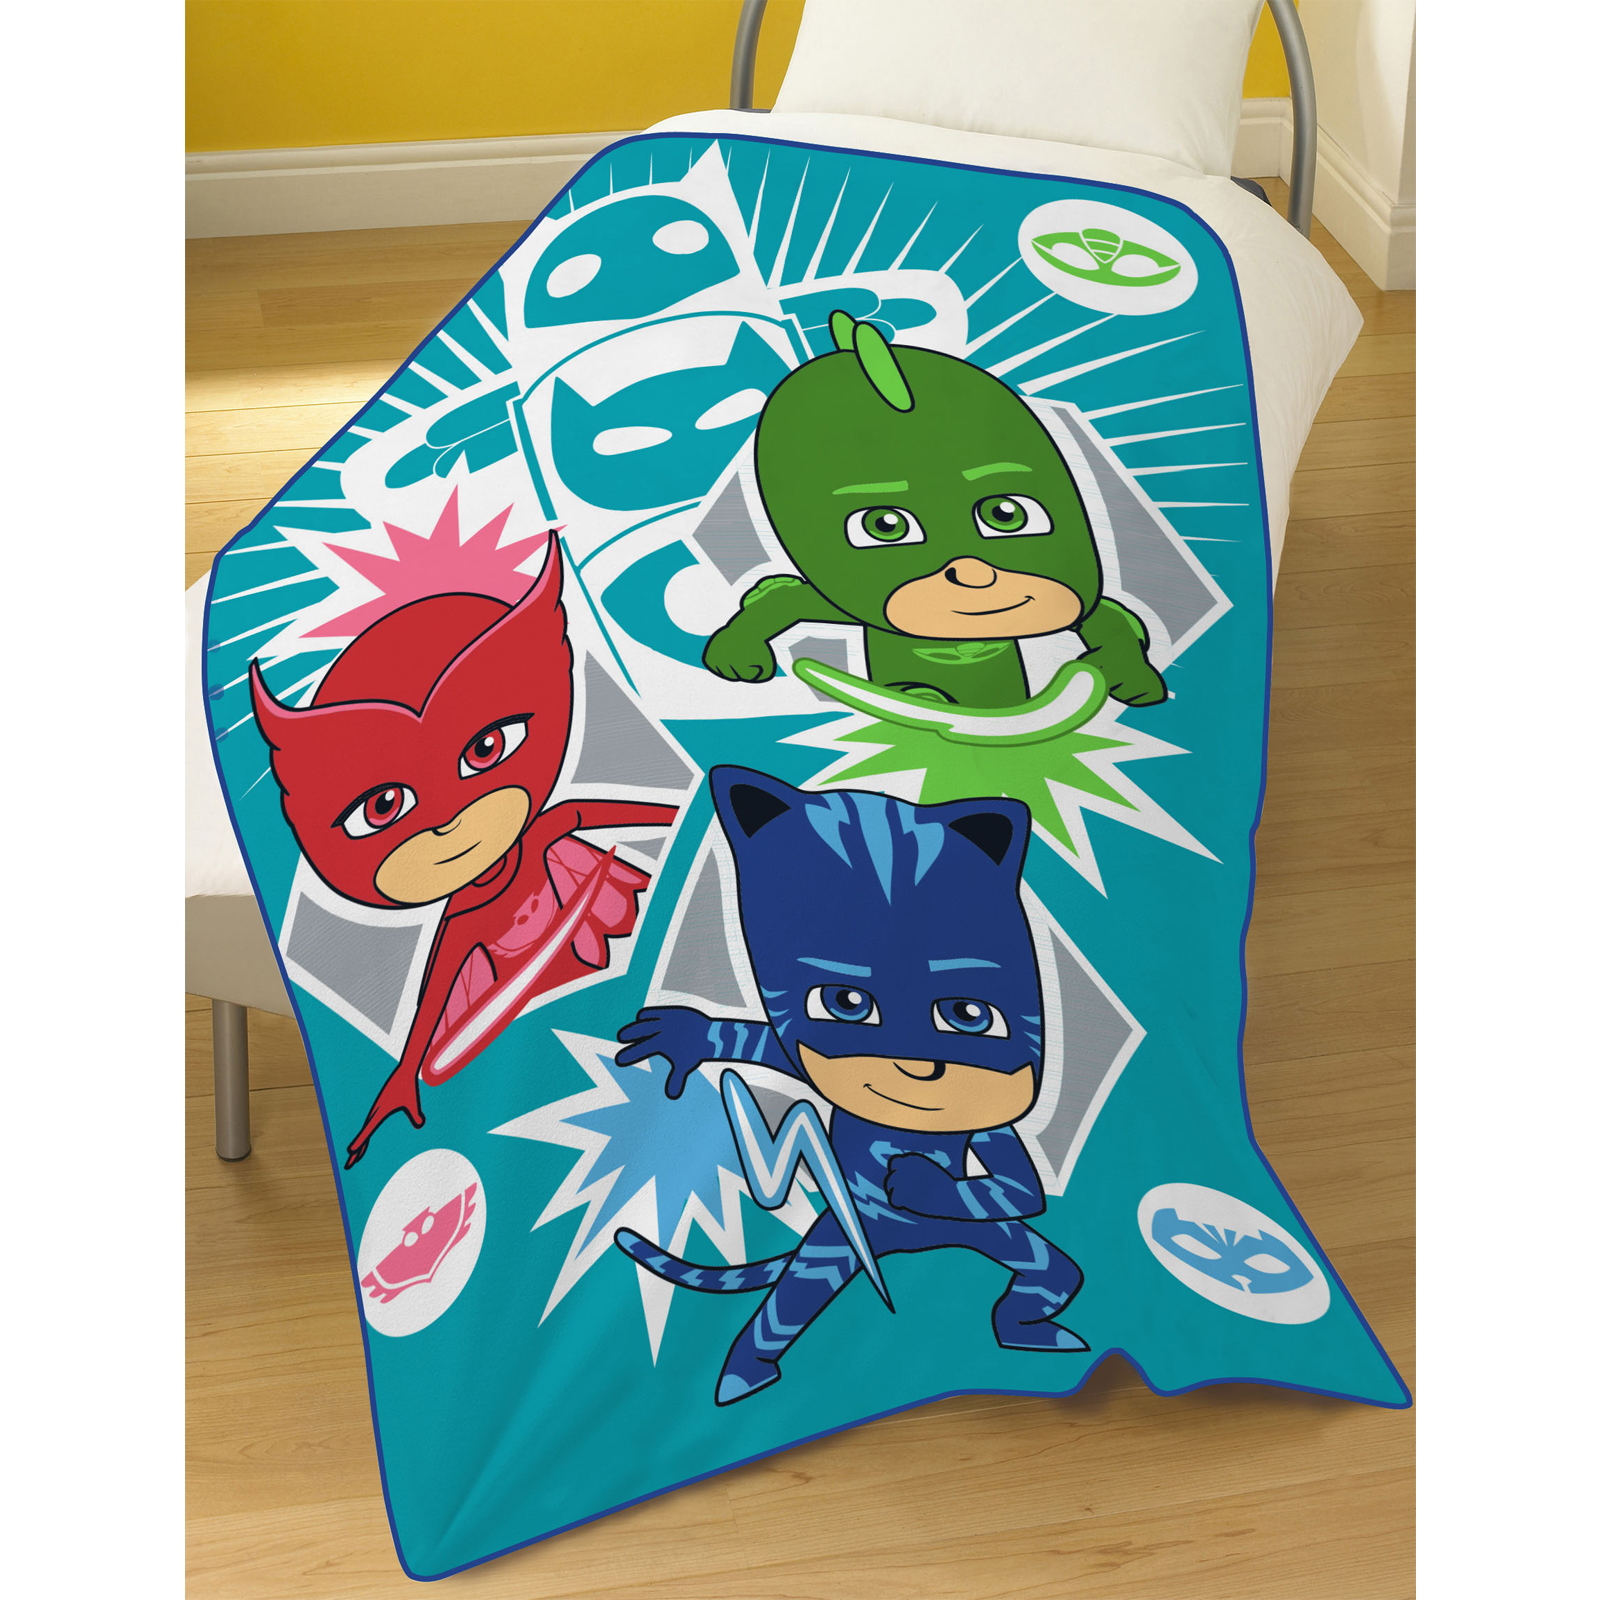 pj-masks-fb-for-web